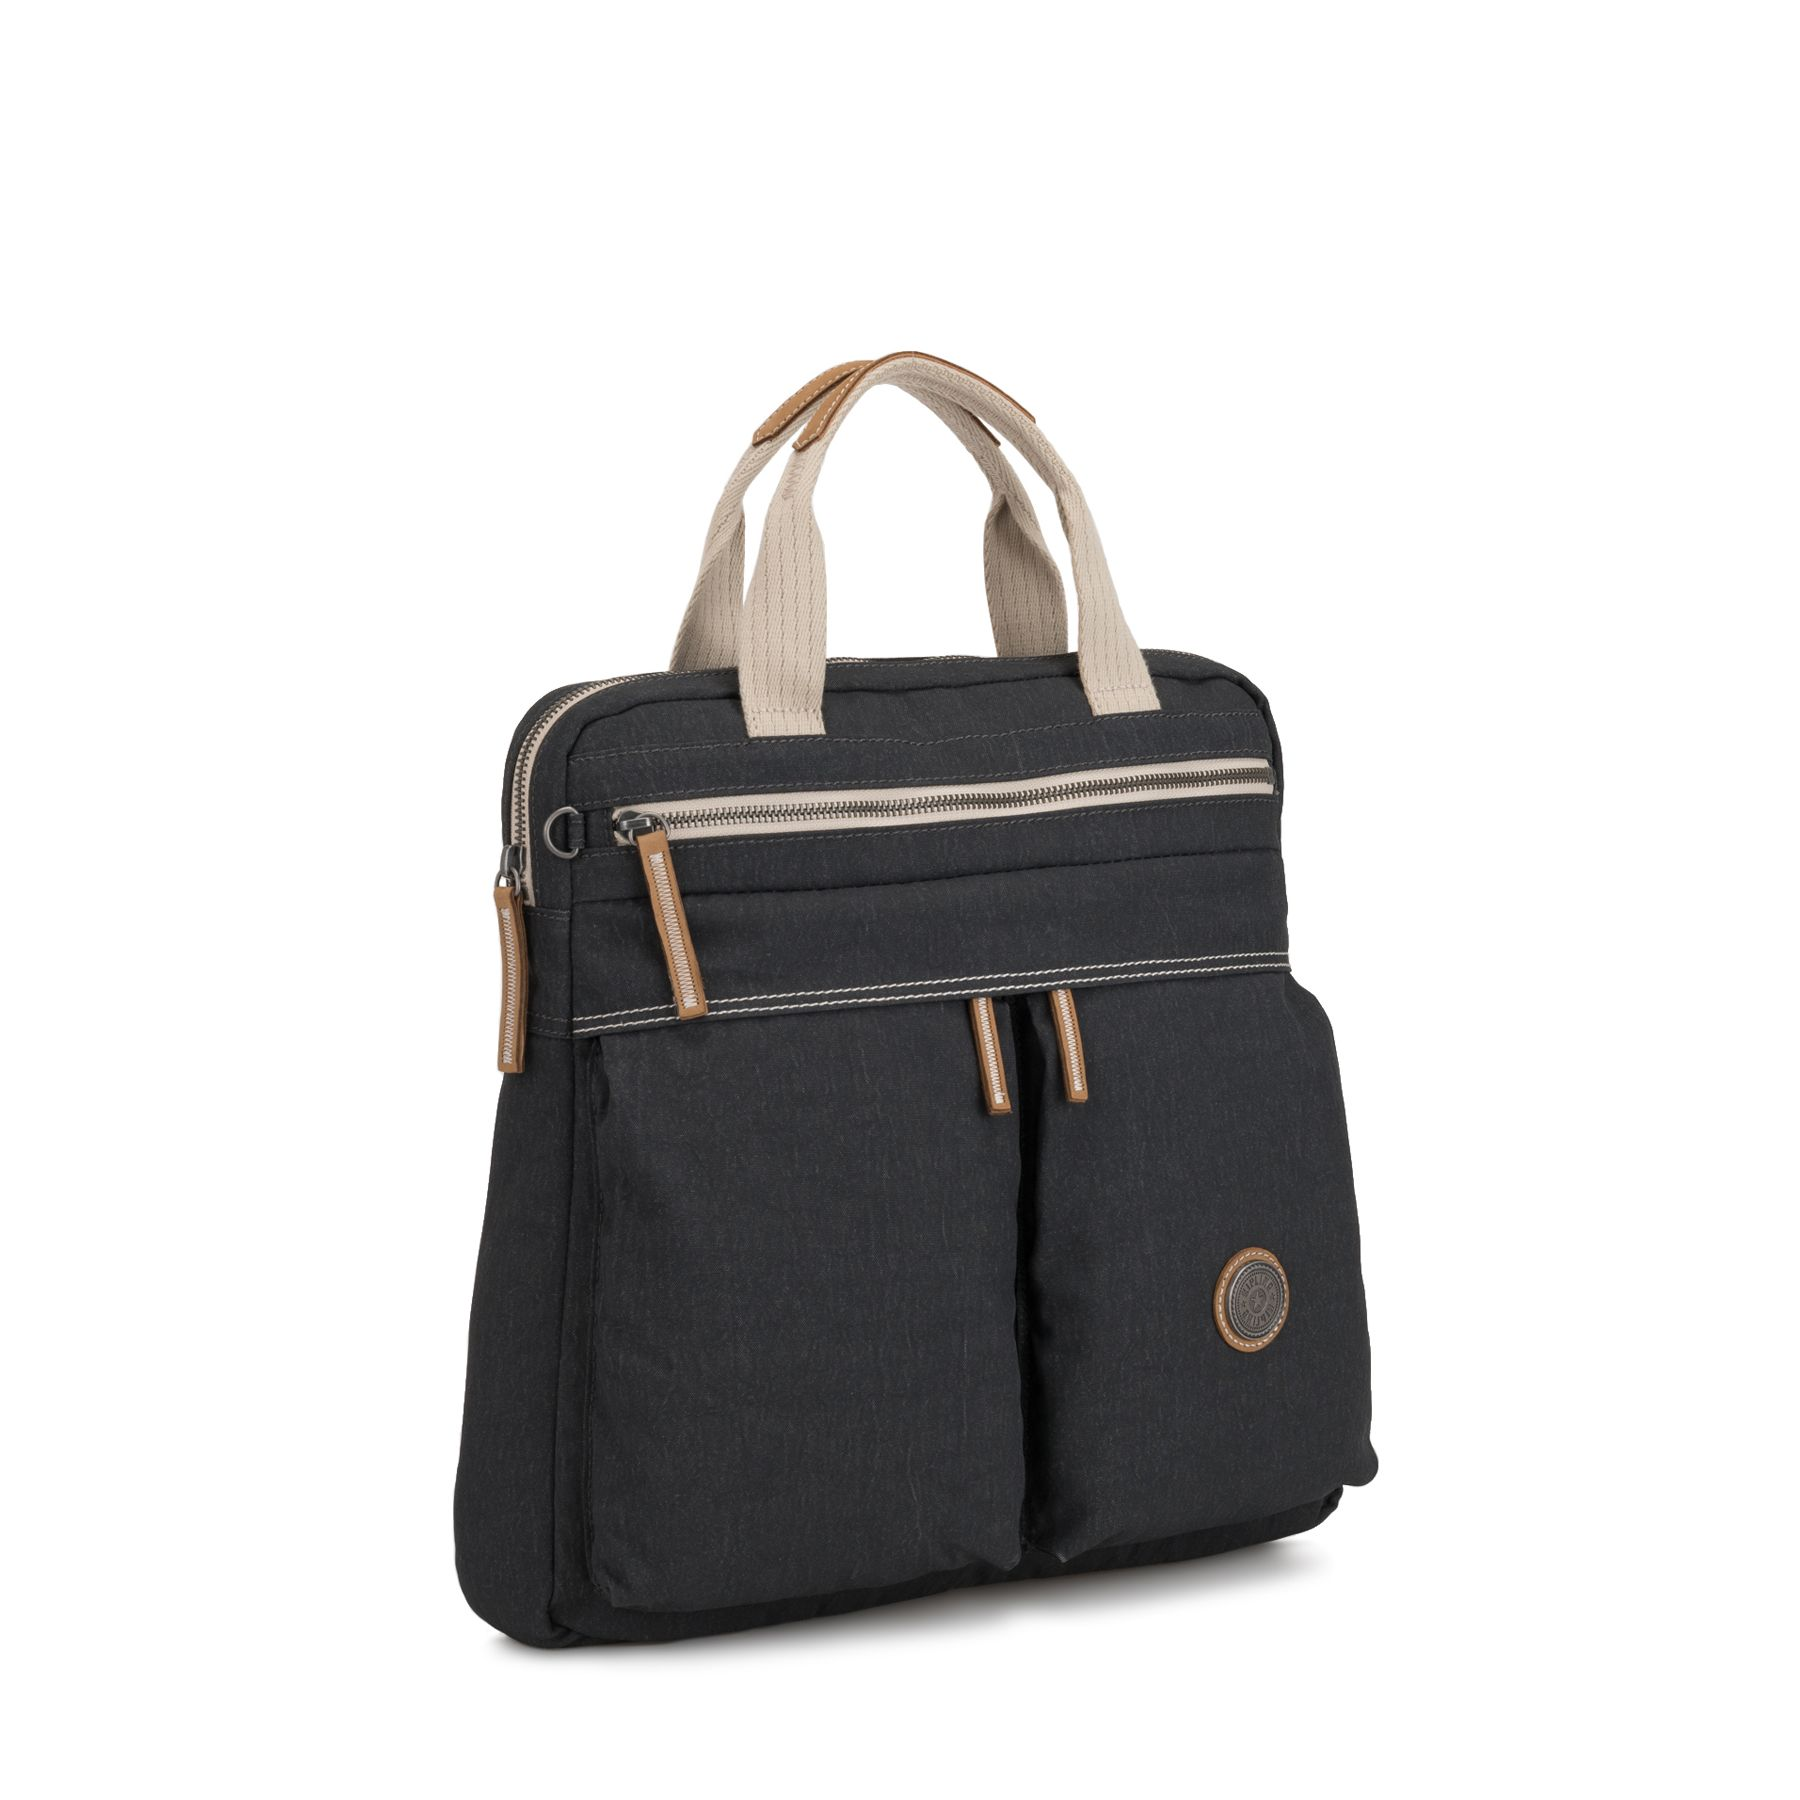 KOMORI S Working Bags by Kipling - view 4